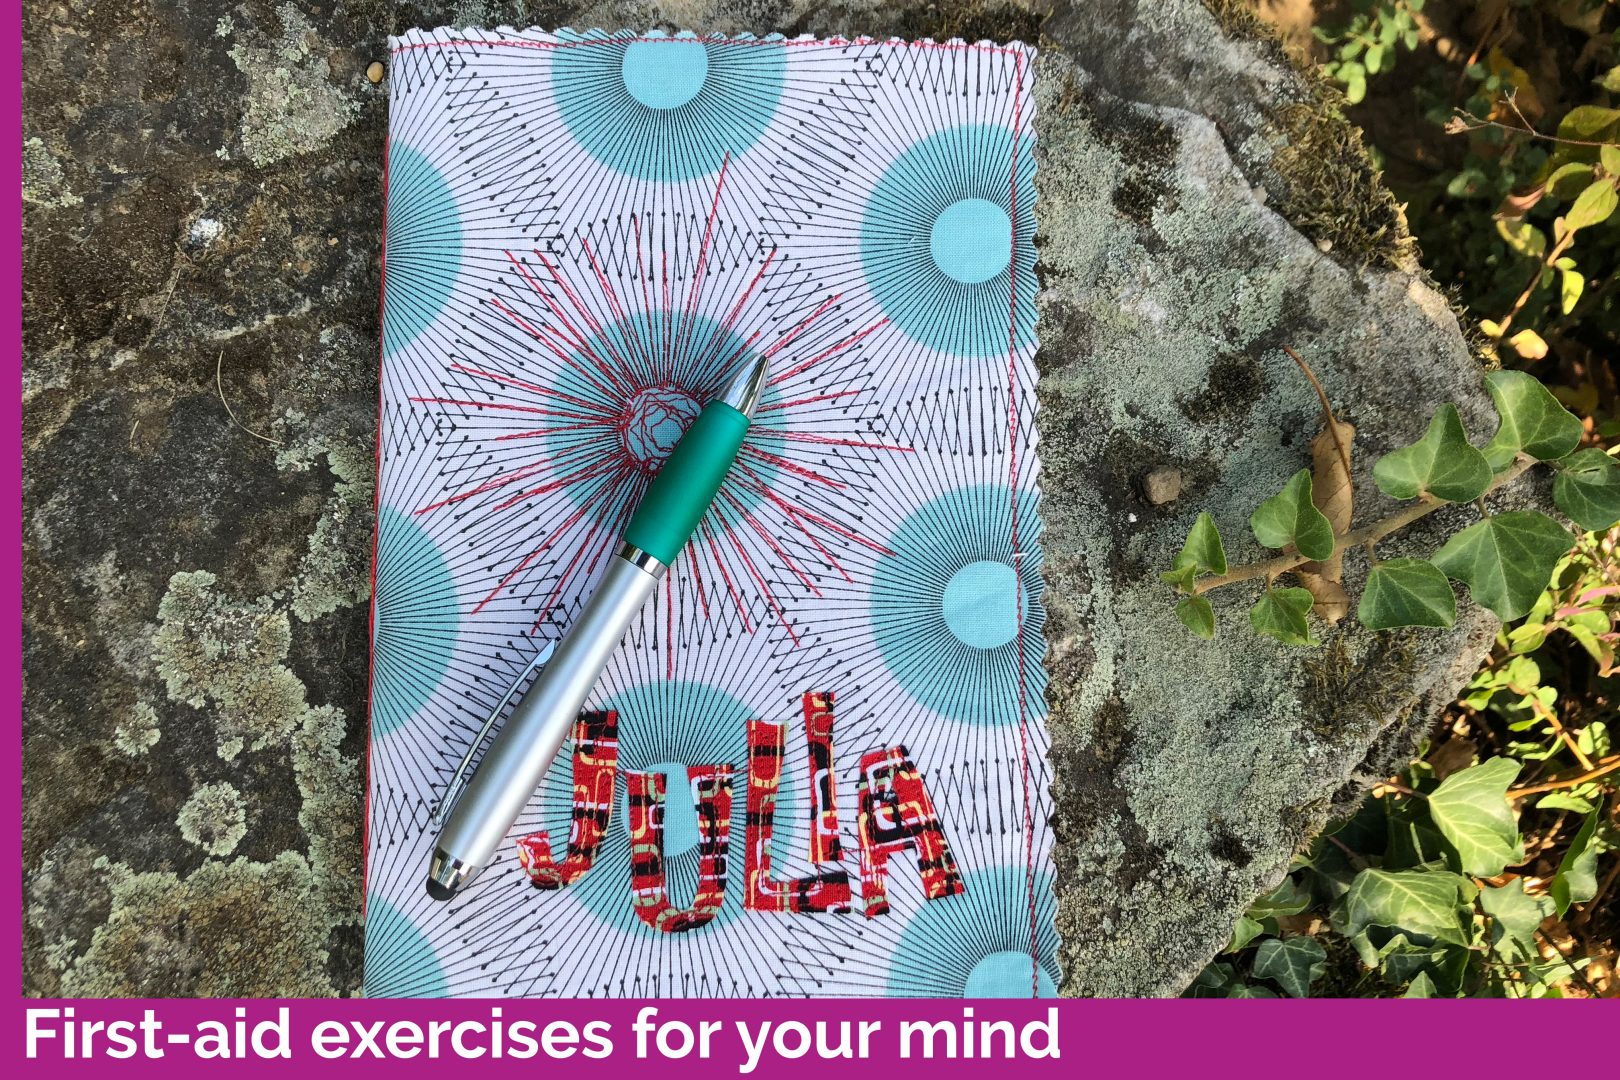 First-aid exercises for your mind